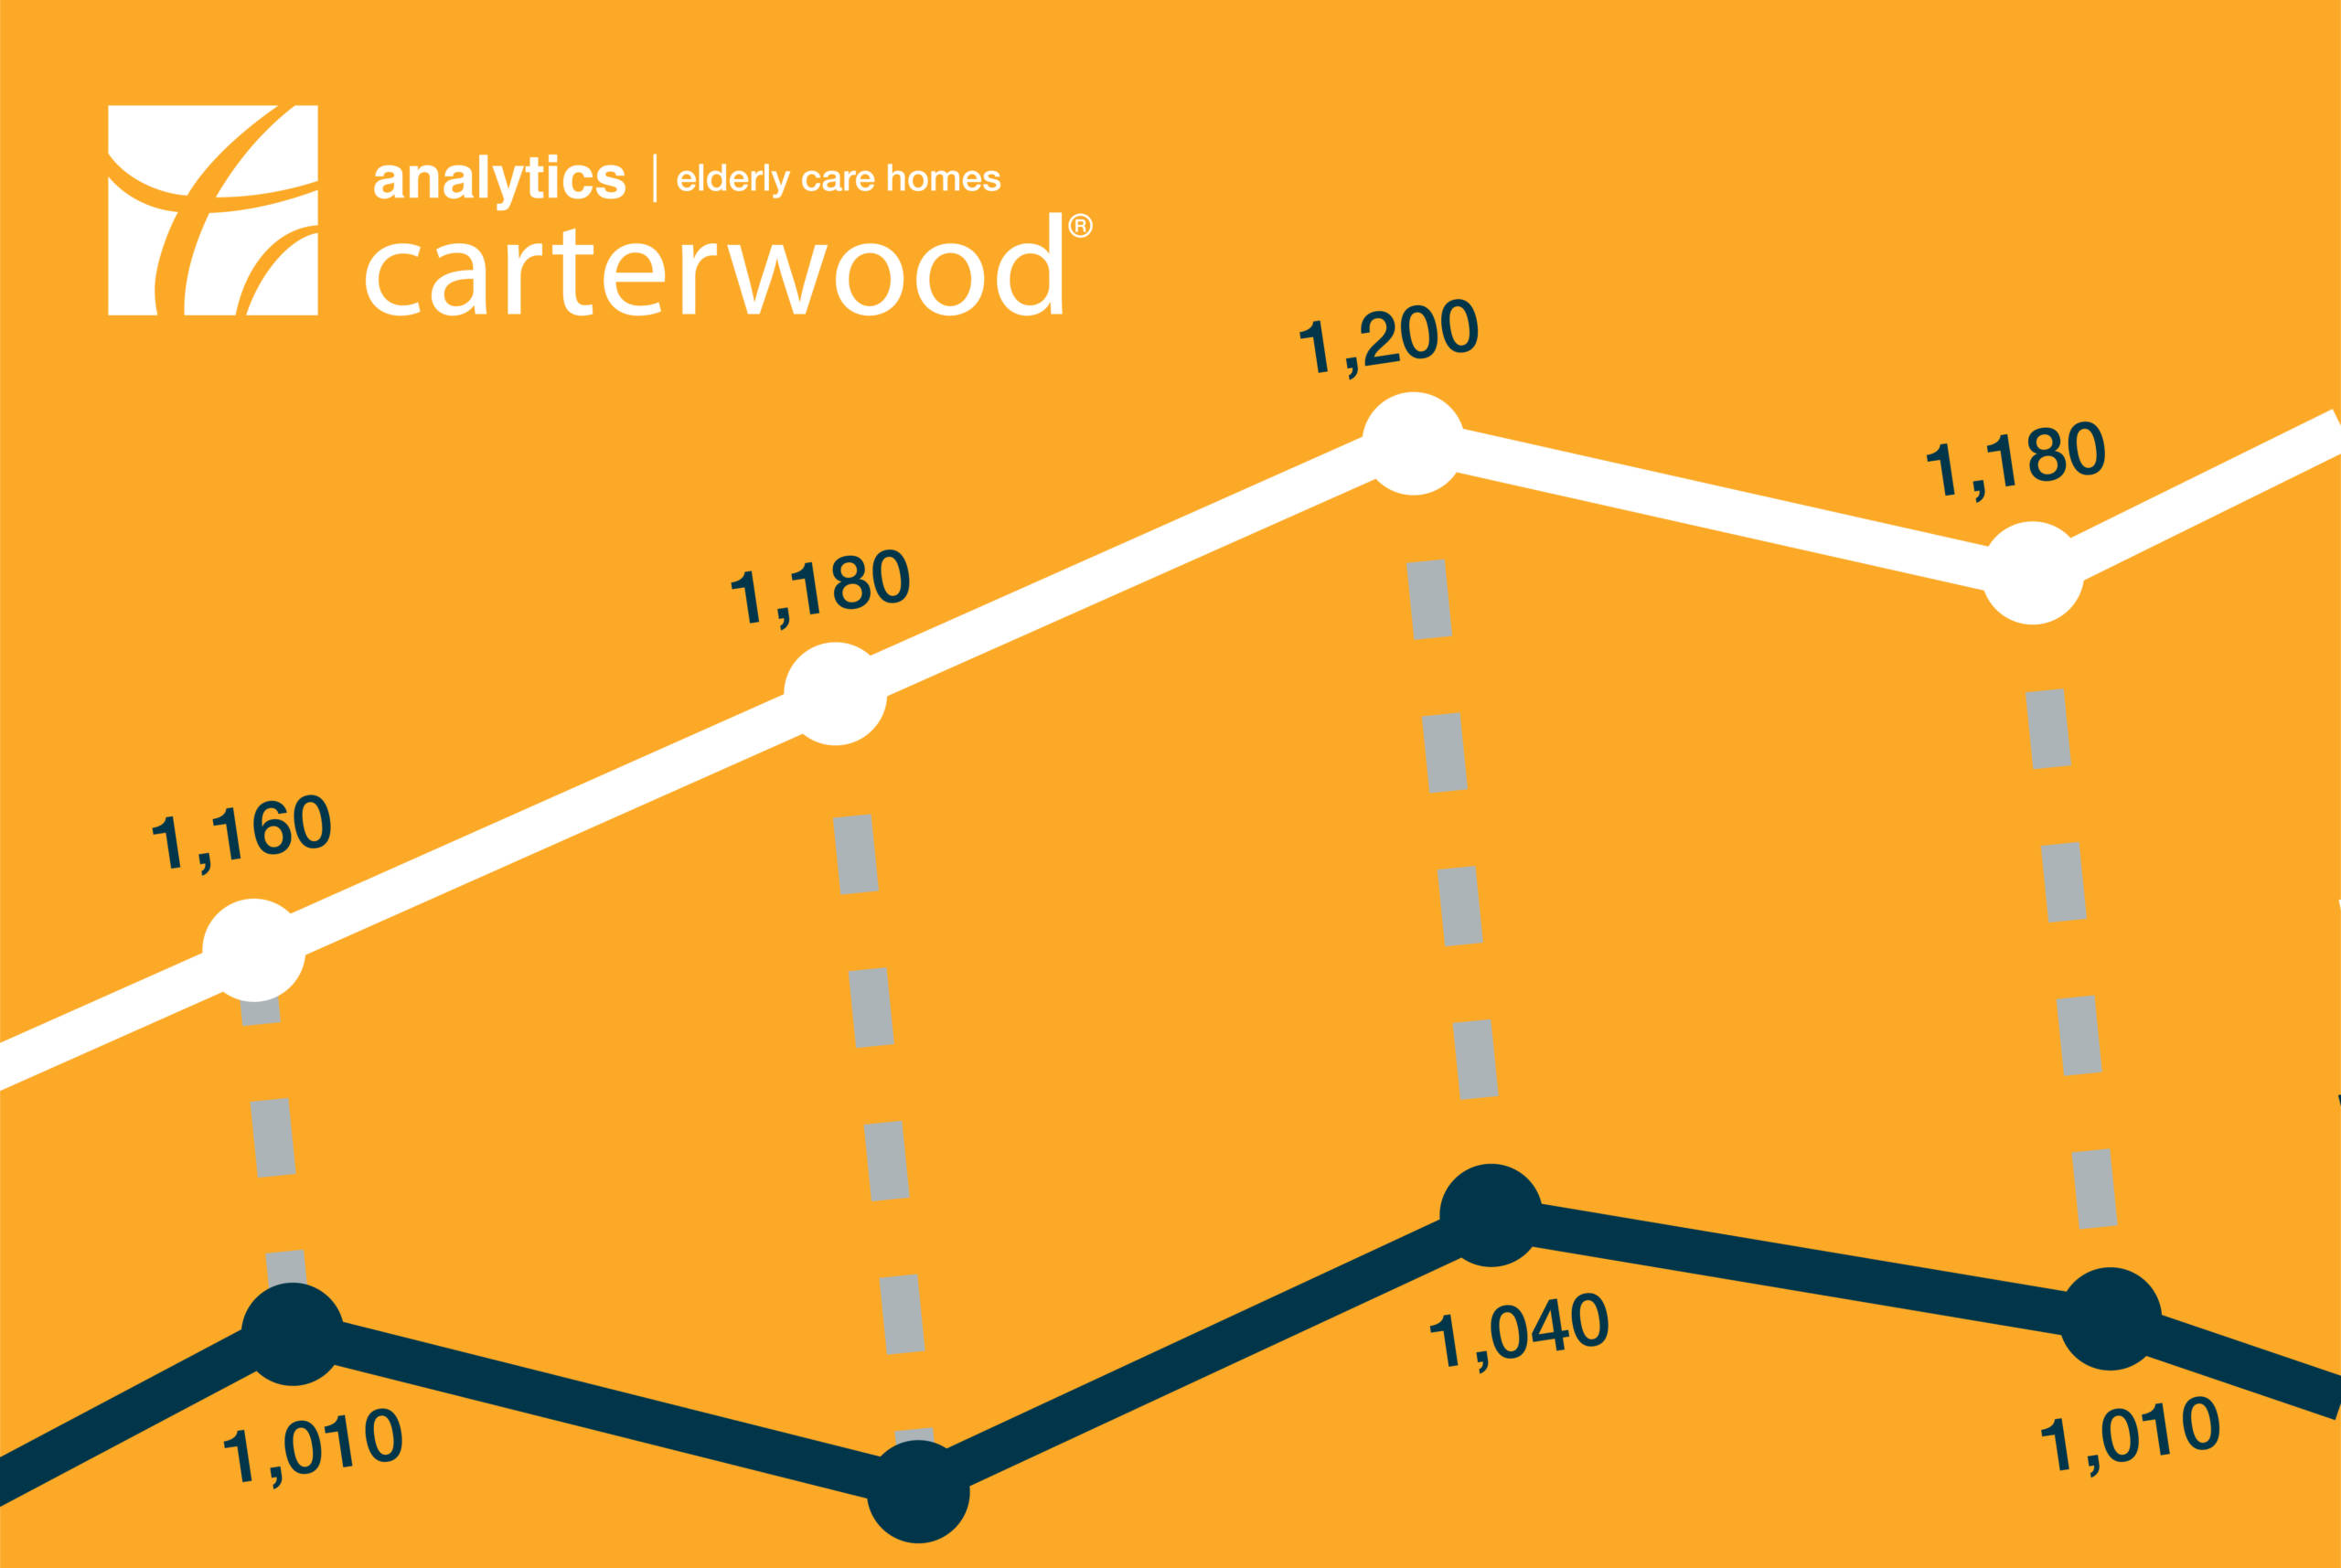 Fresh fees for 9,100 homes have just been added to Carterwood Analytics – Elderly Care Homes